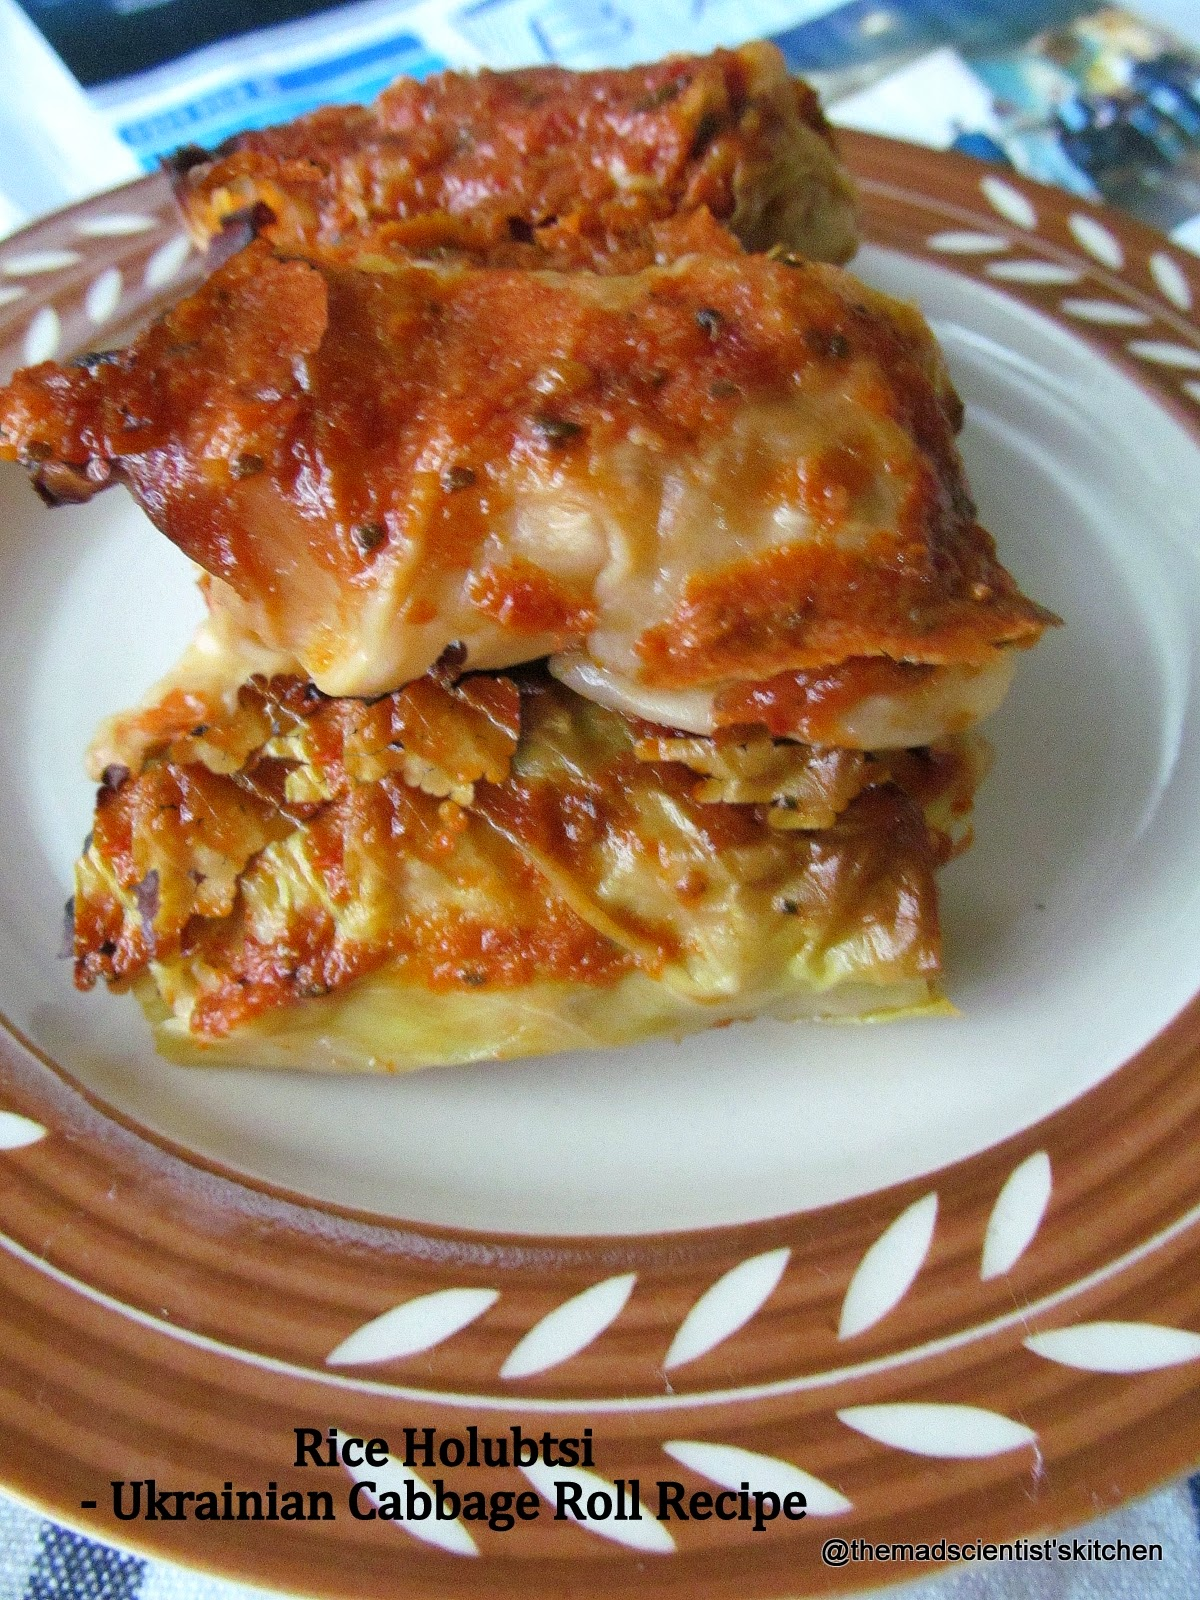 Rice Holubtsi|Ukrainian Cabbage Roll Recipe